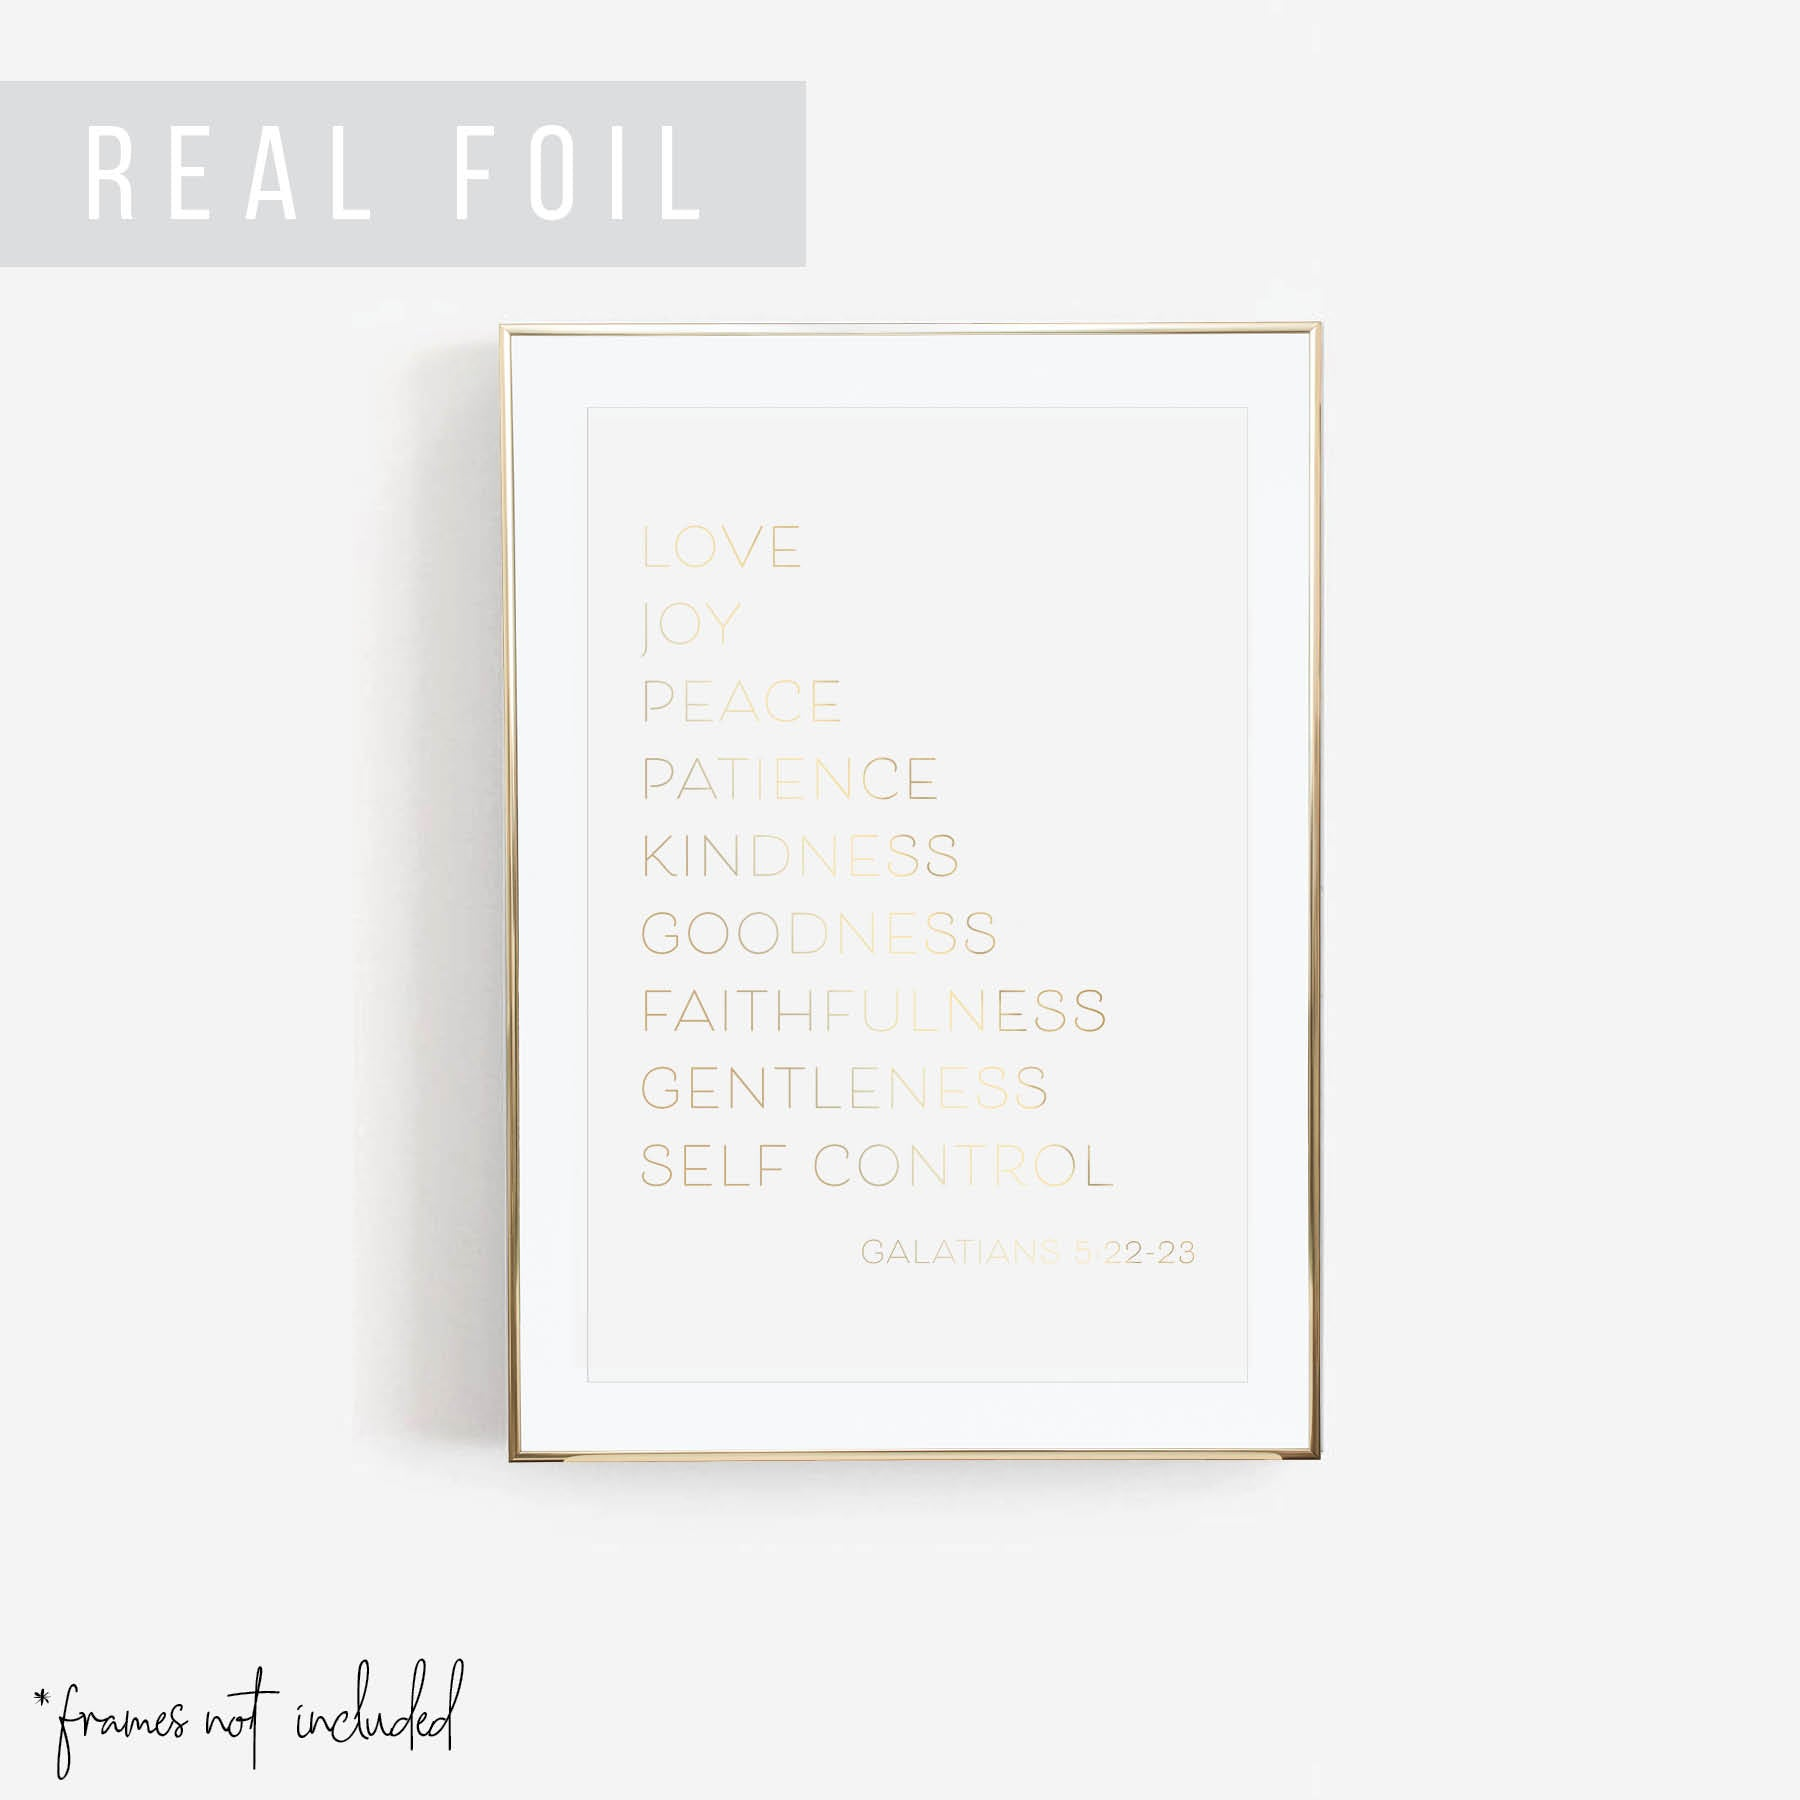 Love, Joy, Peace, Patience, Kindness, Goodness, Faithfulness, Gentleness, Self Control -Galatians 5:22-23 Foiled Art Print